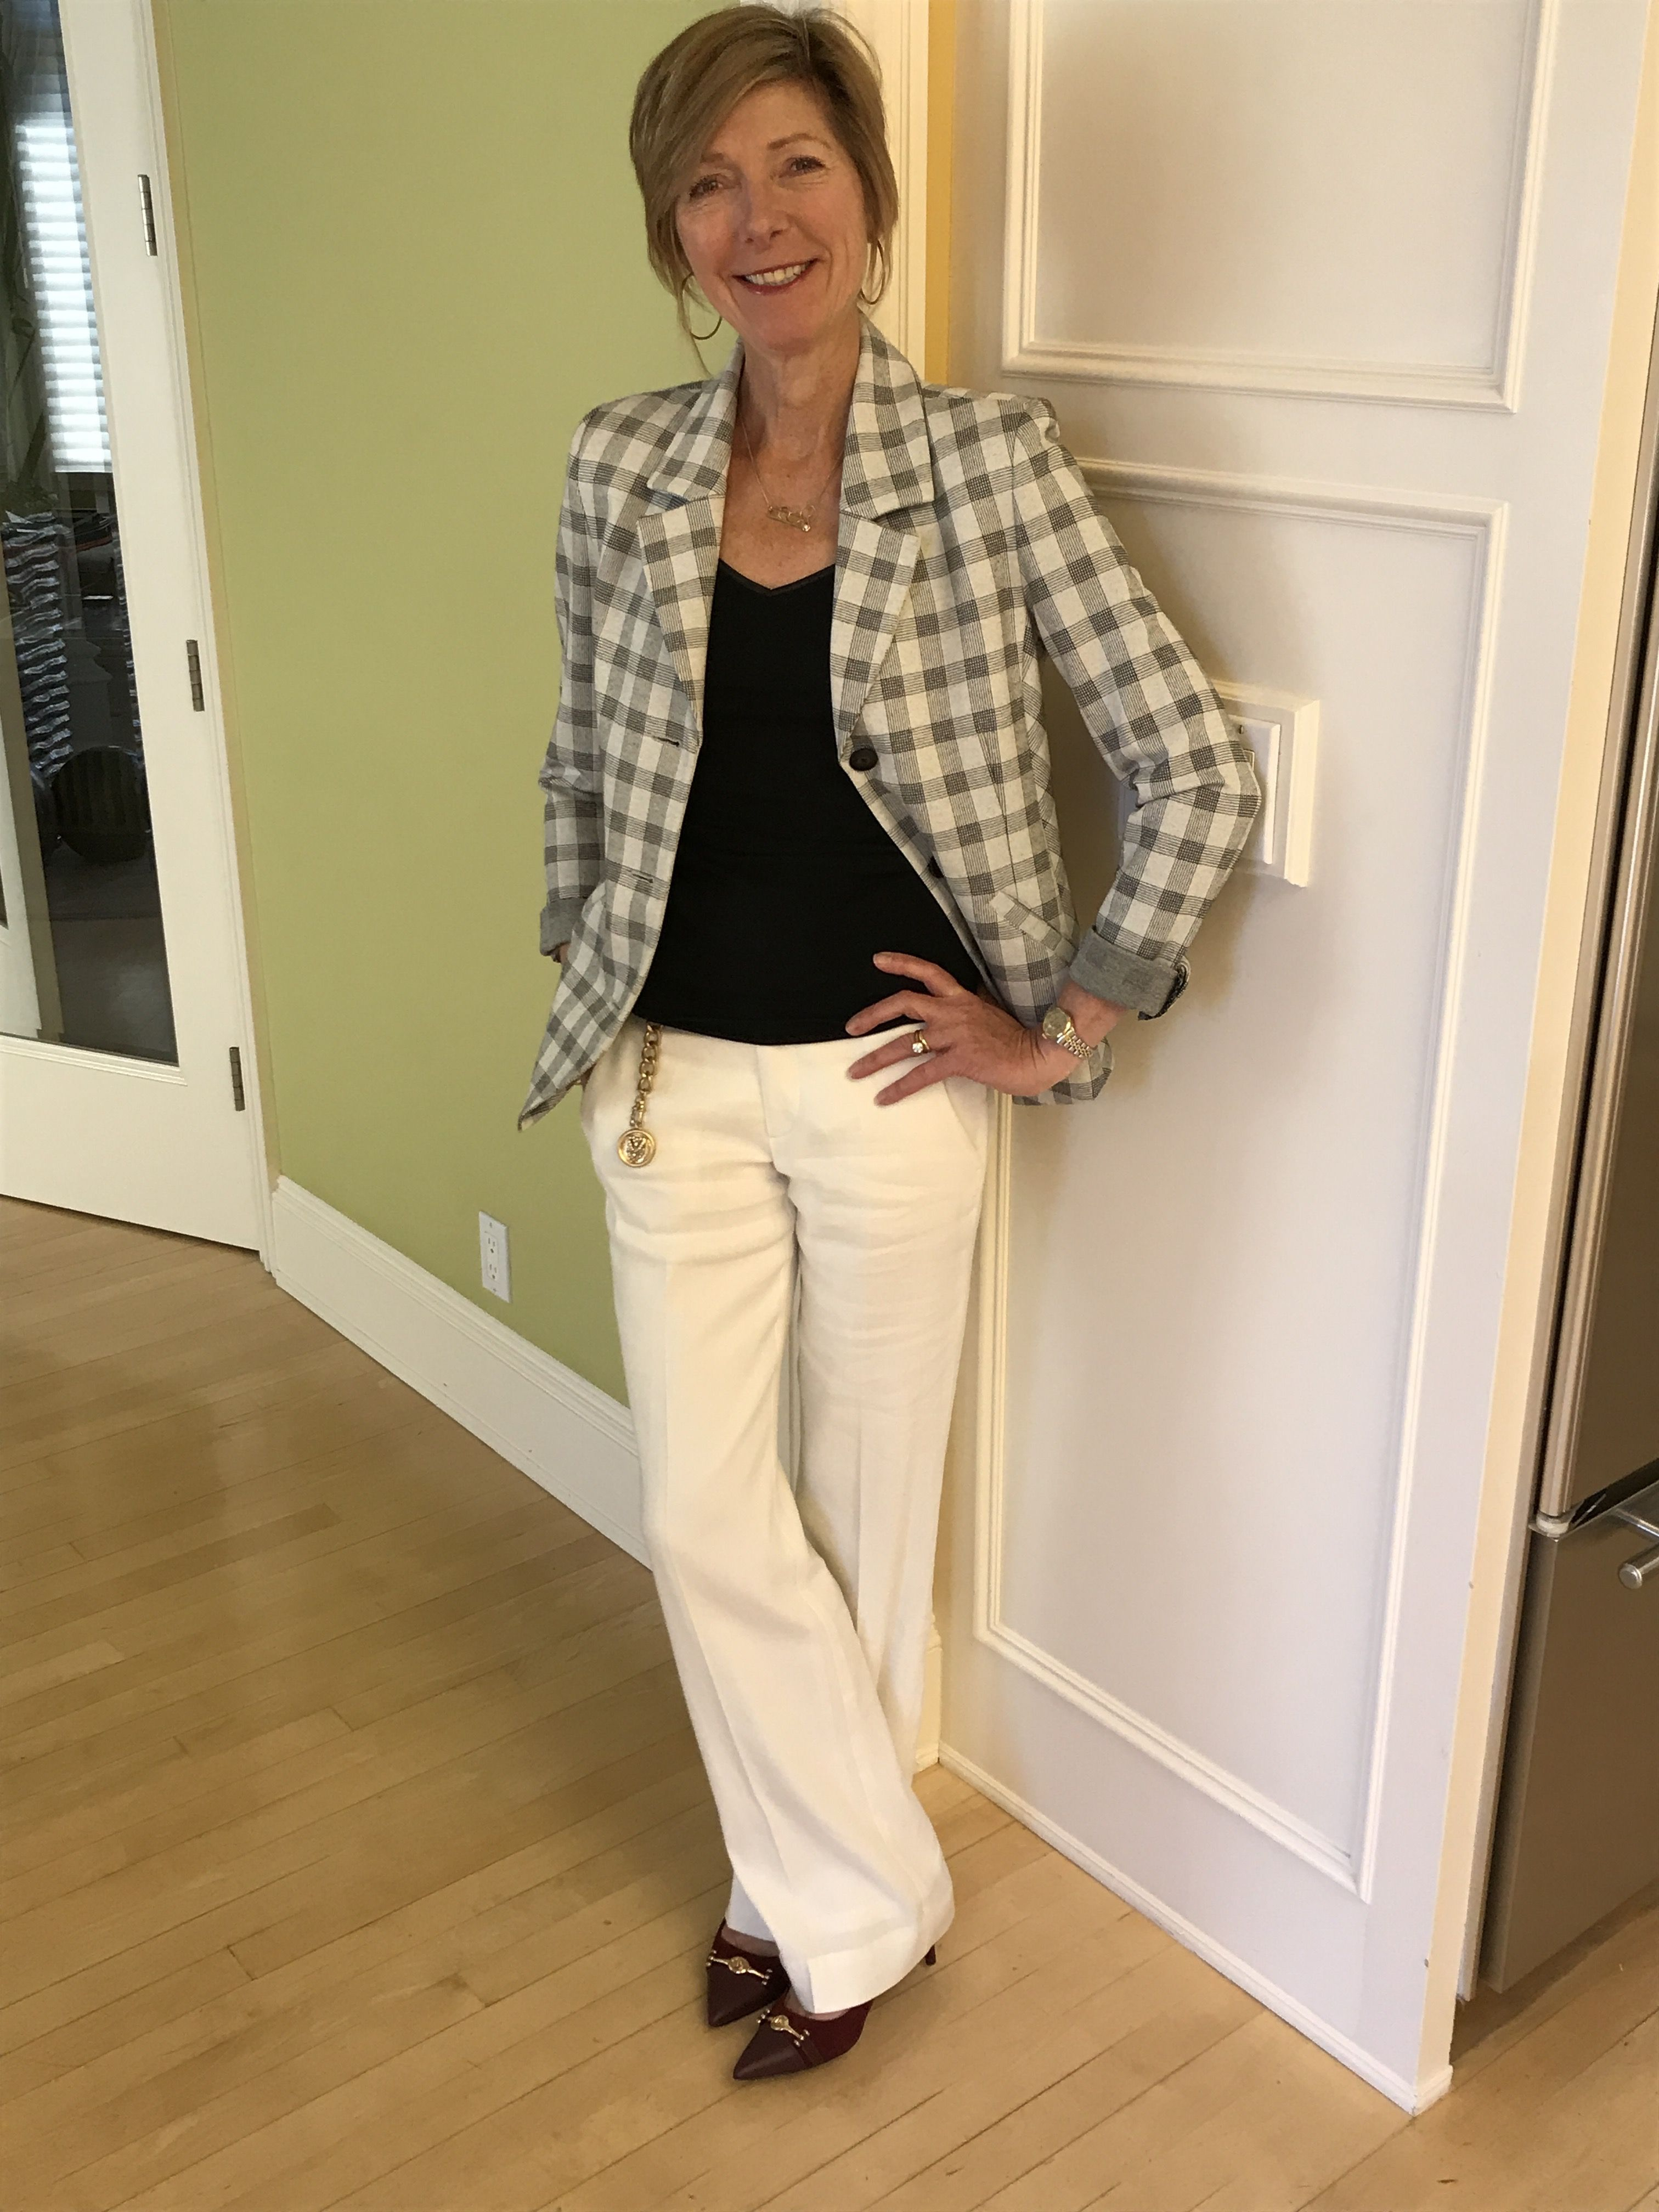 bf8bcf2ec35adc Cabi Valentina Blazer and Angel Trouser is the most comfortable outfit...  Blazer is super-stretch ponte knit and trouser is 1/2 linen 1/2 rayon  w/stretch ...